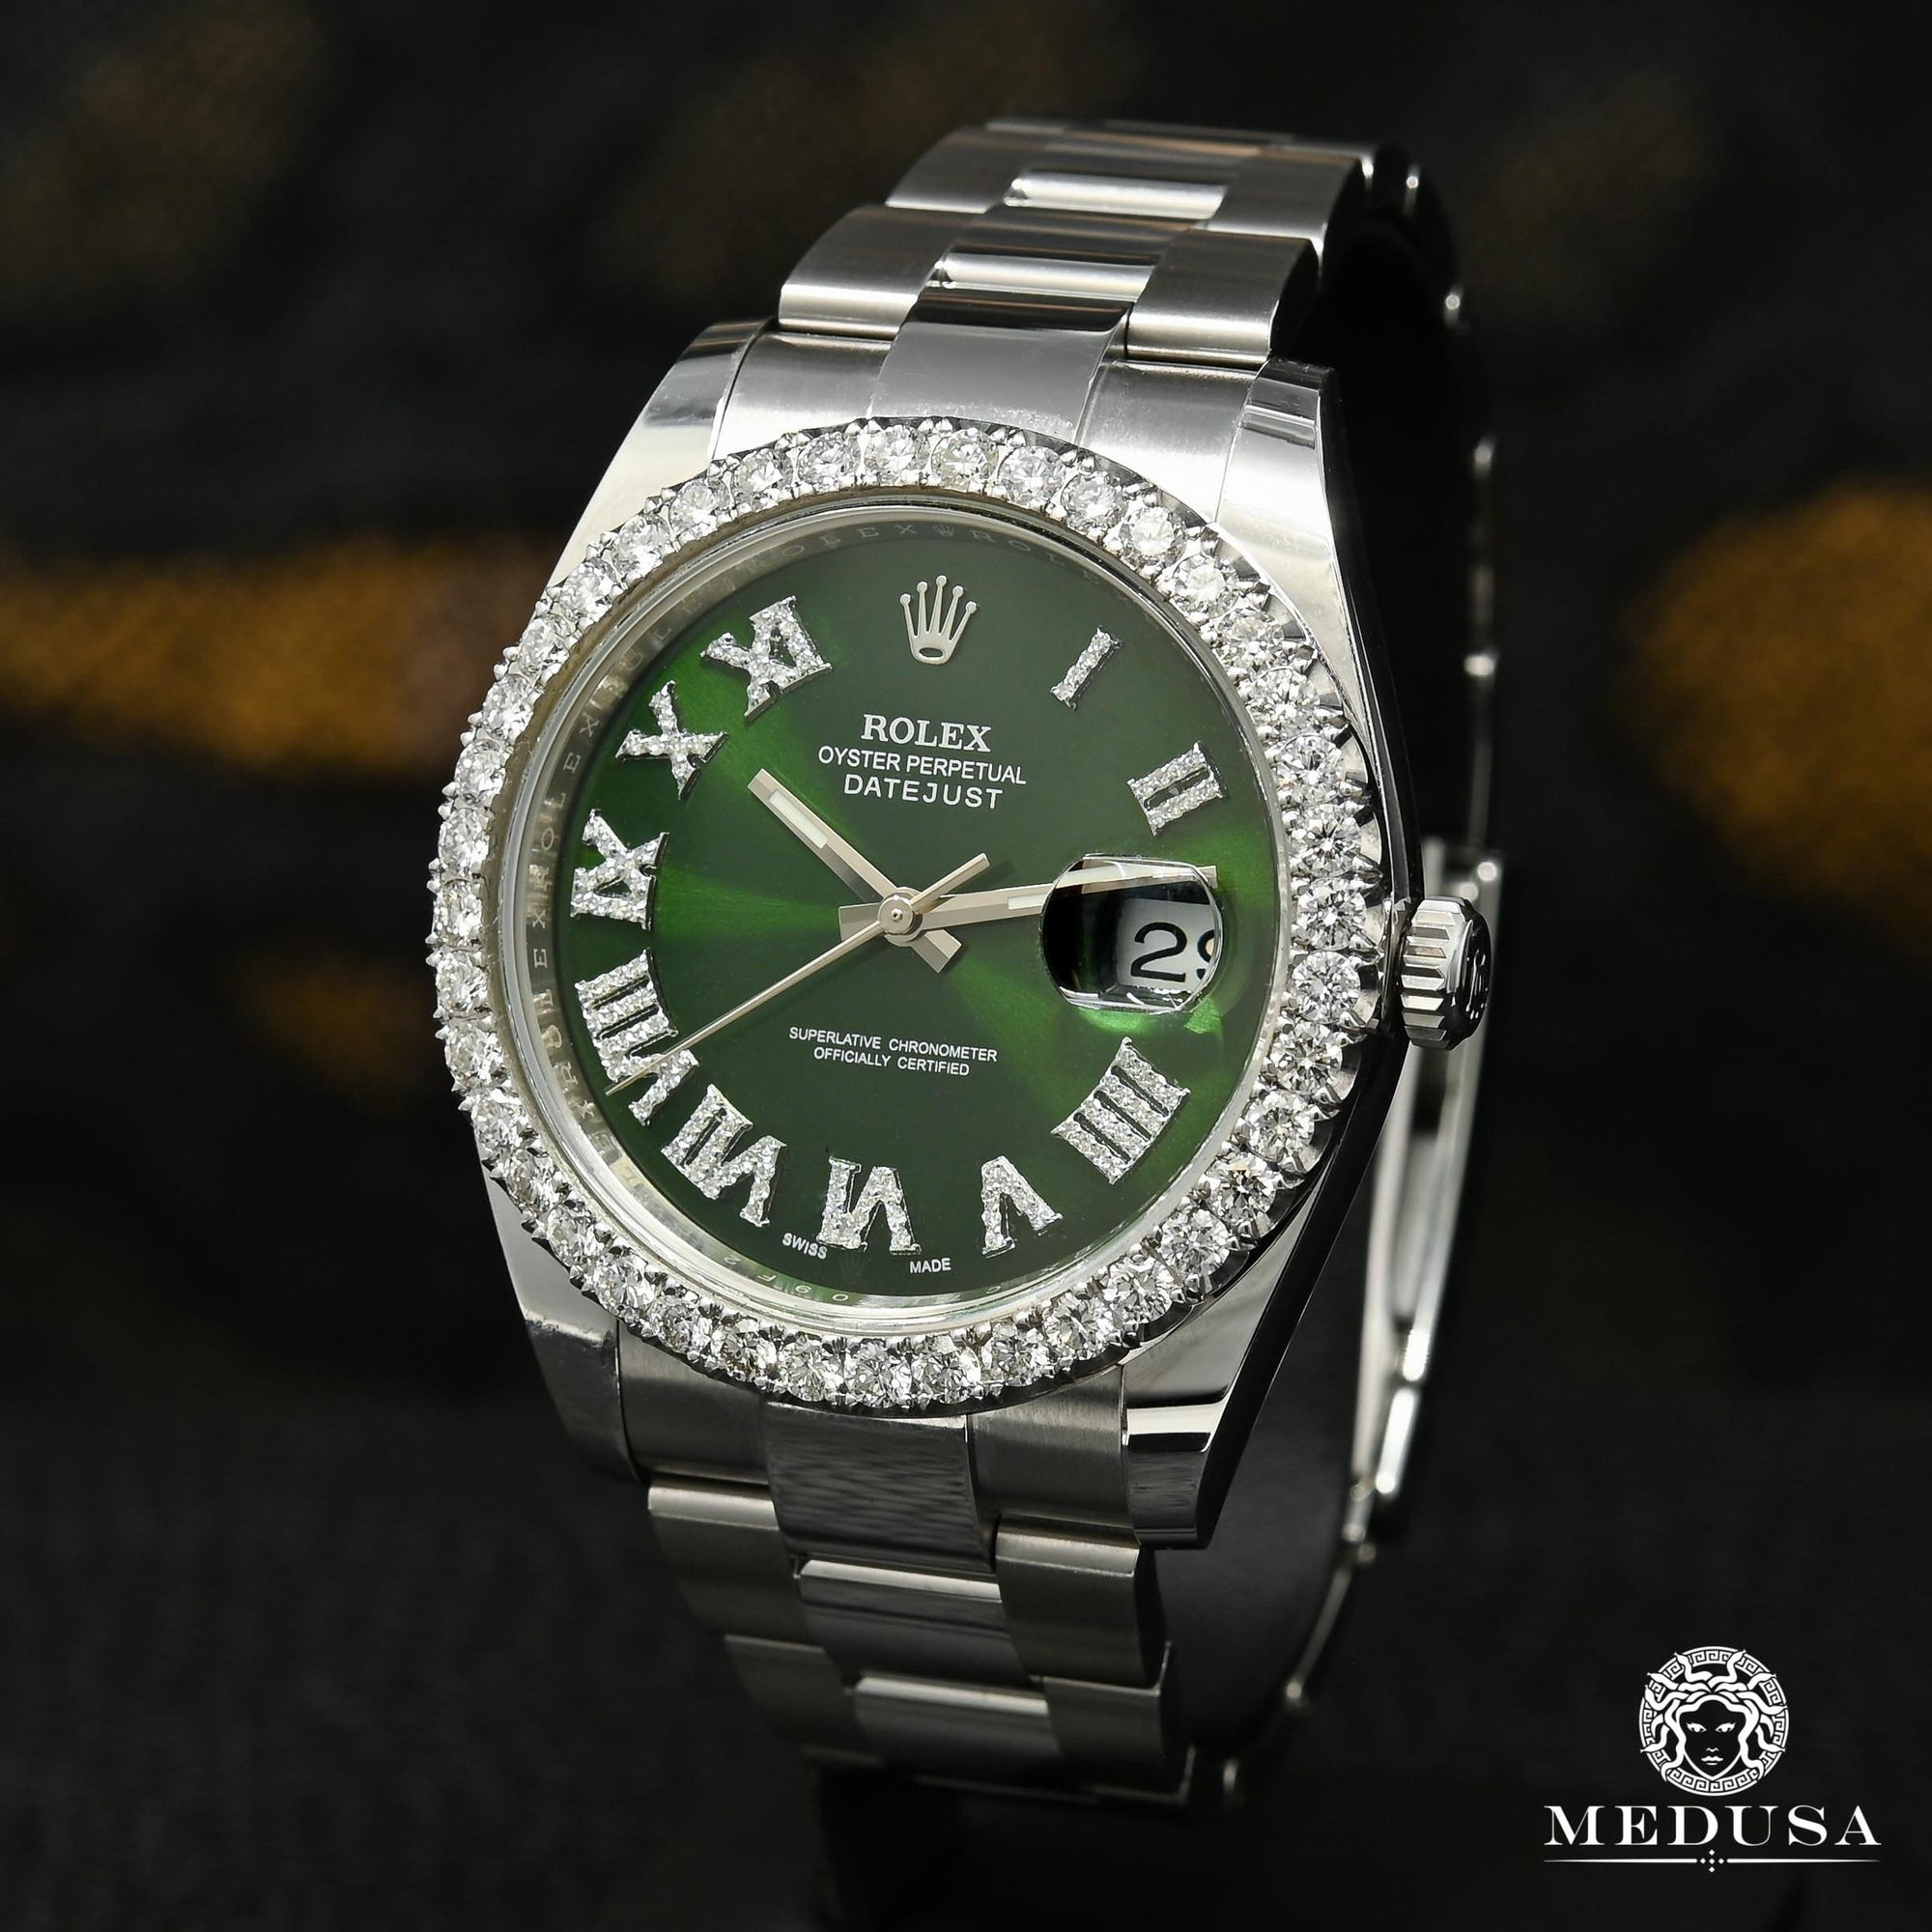 Rolex Datejust 41mm - Green Romain Iced